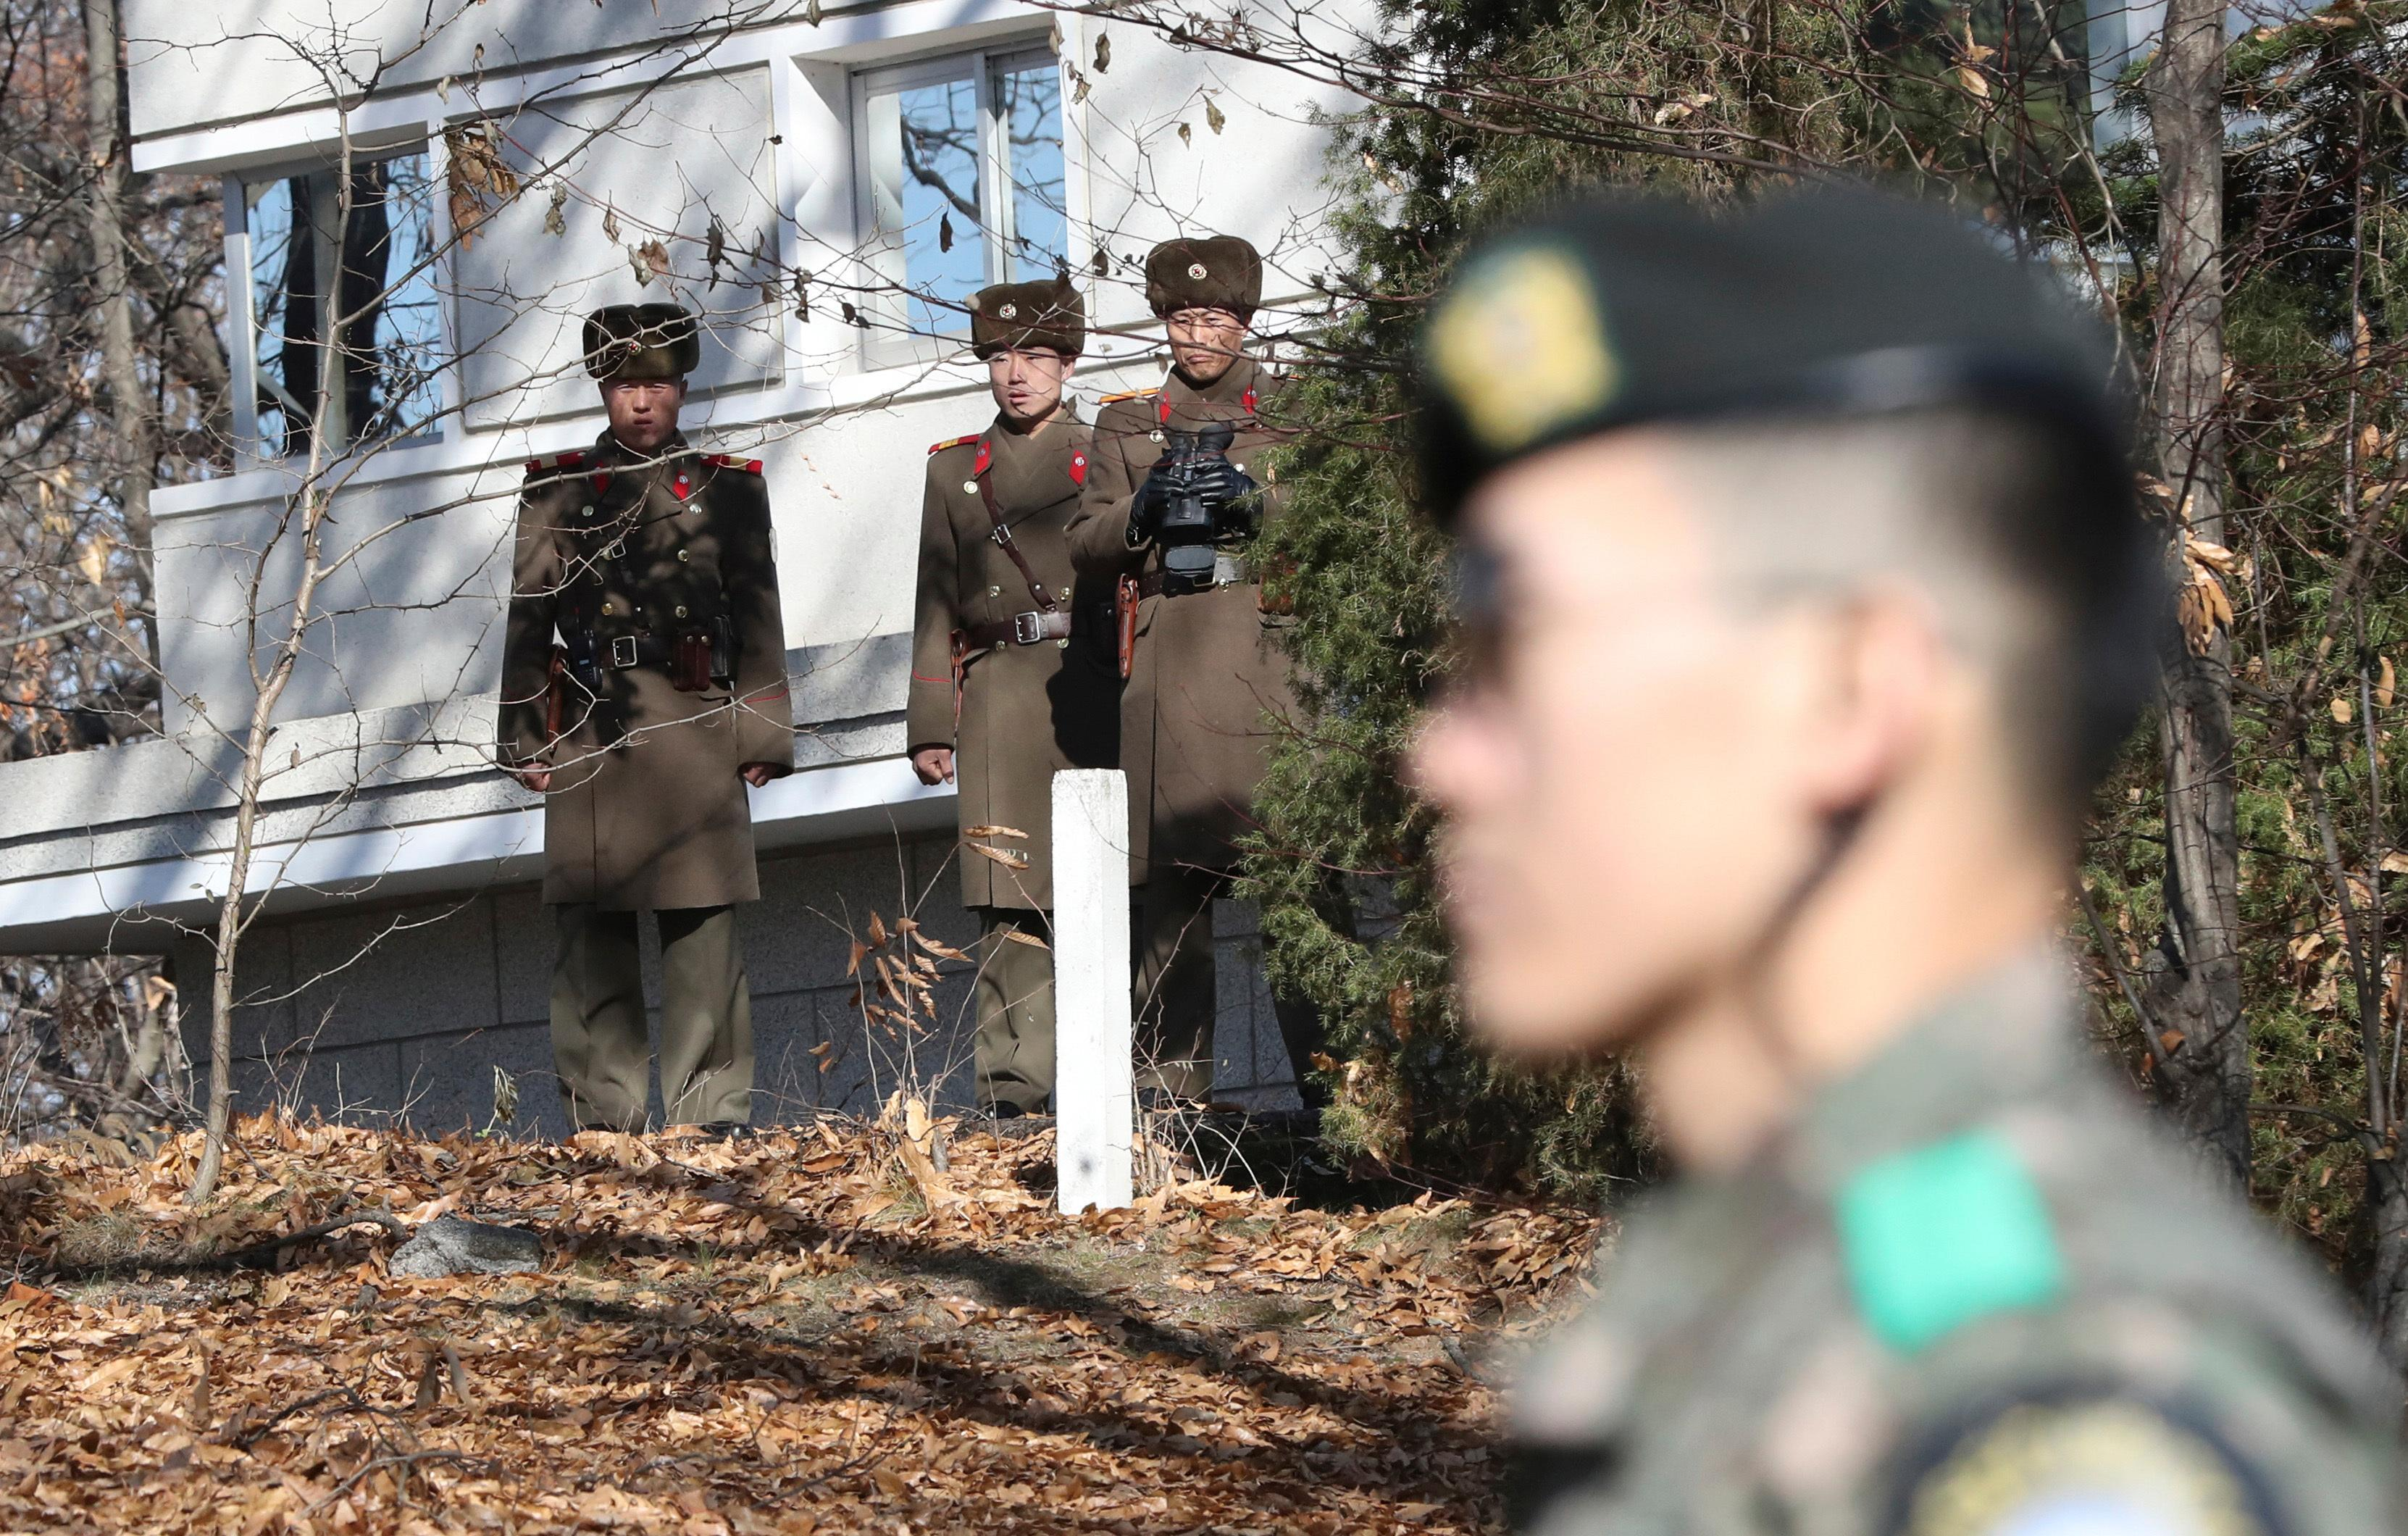 FILE - In this Nov. 27, 2017, file photo, North Korean soldiers look at the South side as a South Korean stands guard near the spot where a North Korean soldier crossed the border on Nov. 13 at the Panmunjom, in the Demilitarized Zone, South Korea. South Korea says on Thursday, Dec. 21, 2017, it has fired 20 rounds of warning shots as North Korean soldiers approached a military demarcation line at the border after their comrade defected to South Korea. (AP Photo/Lee Jin-man, File)